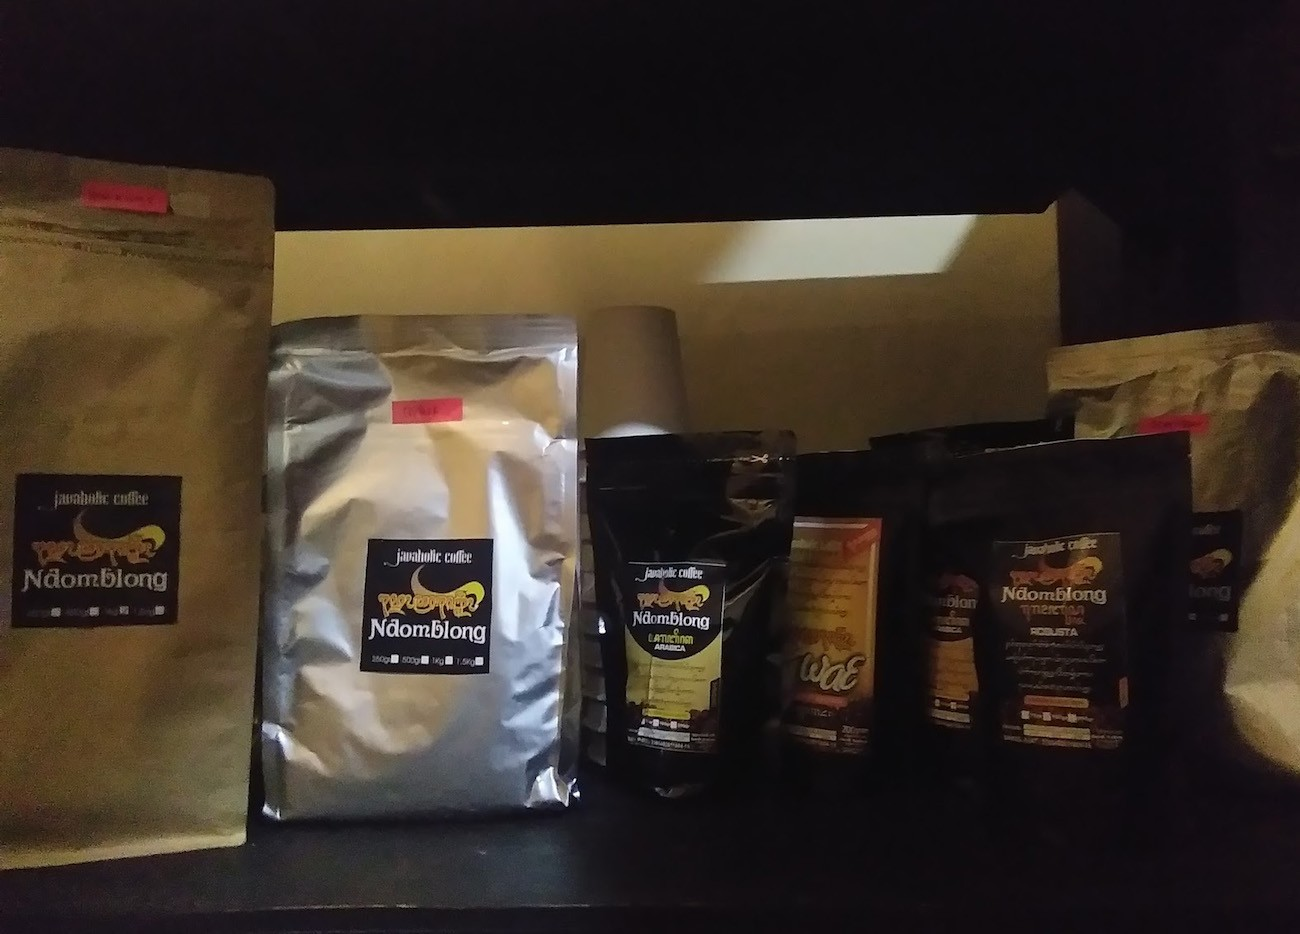 Some of Wonogiri's coffee products are on display.